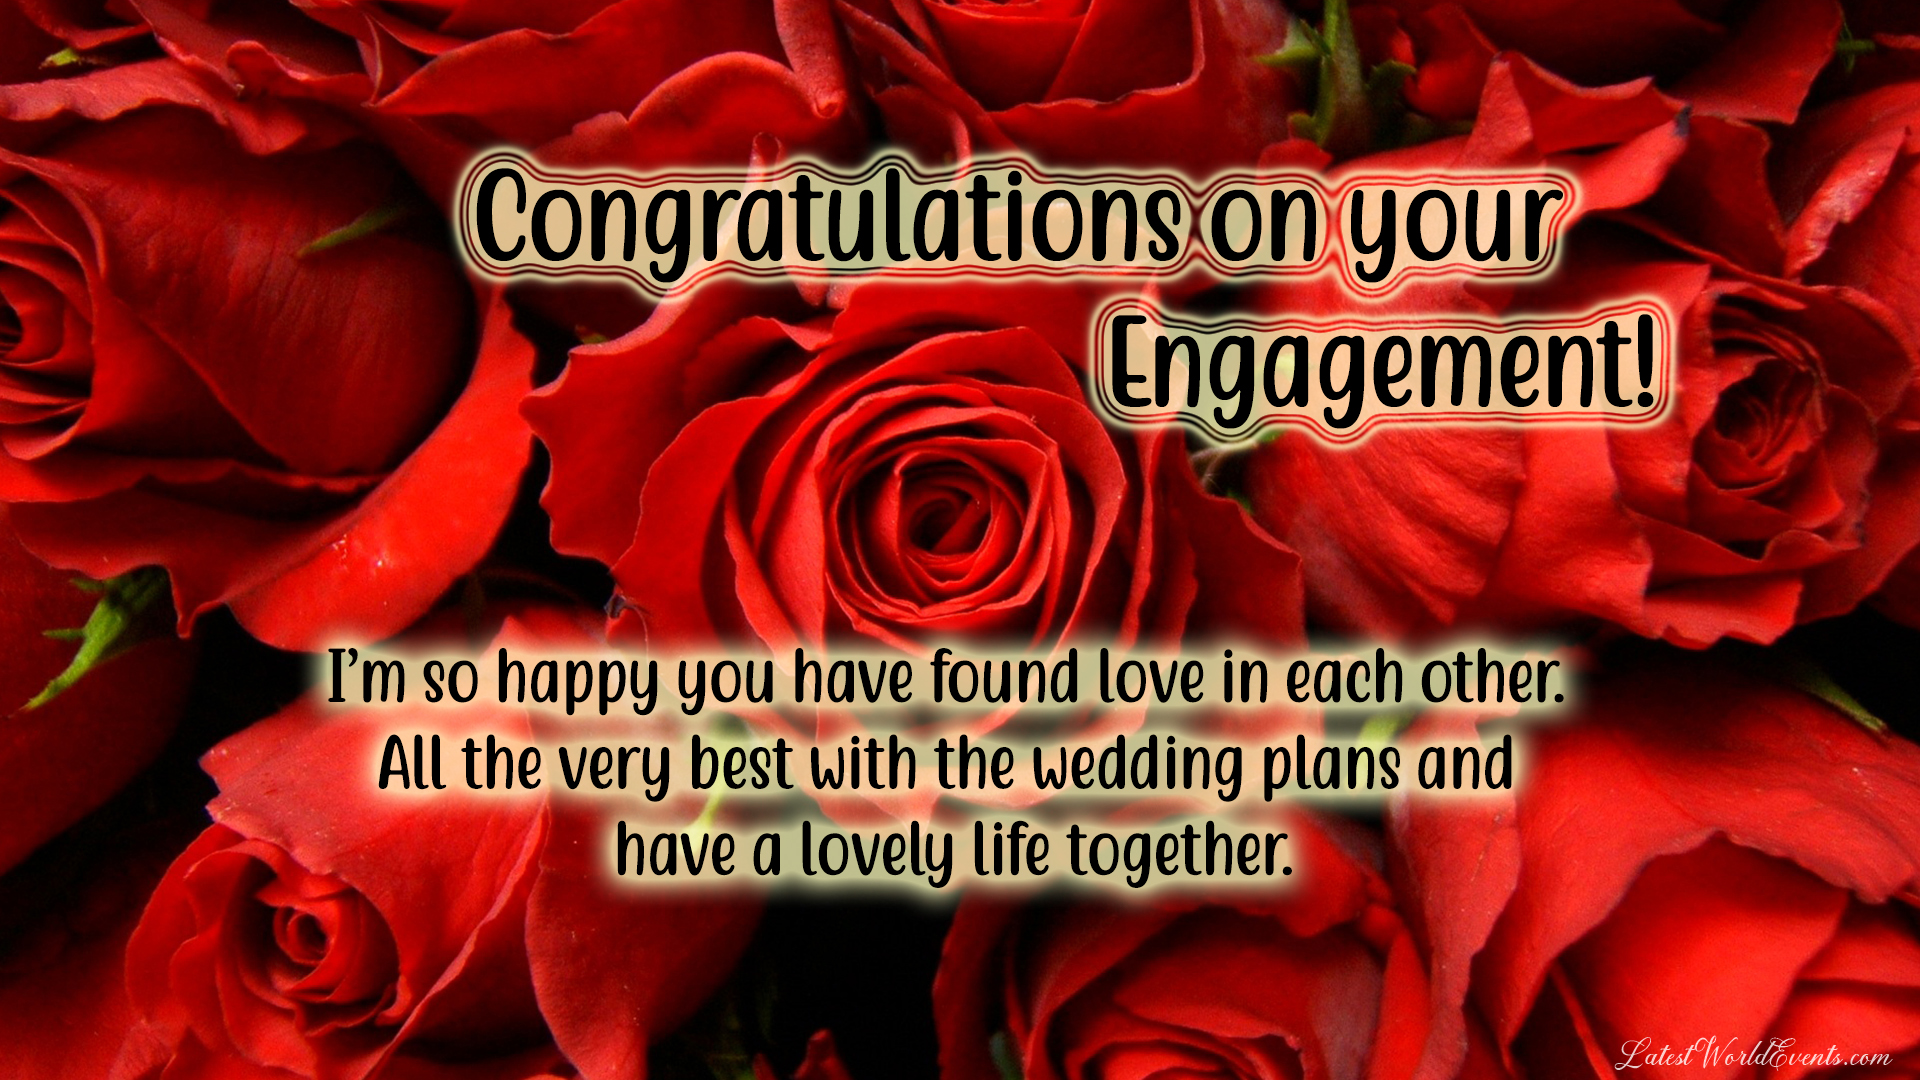 happy engagement wishes congratulation on your engagement brother